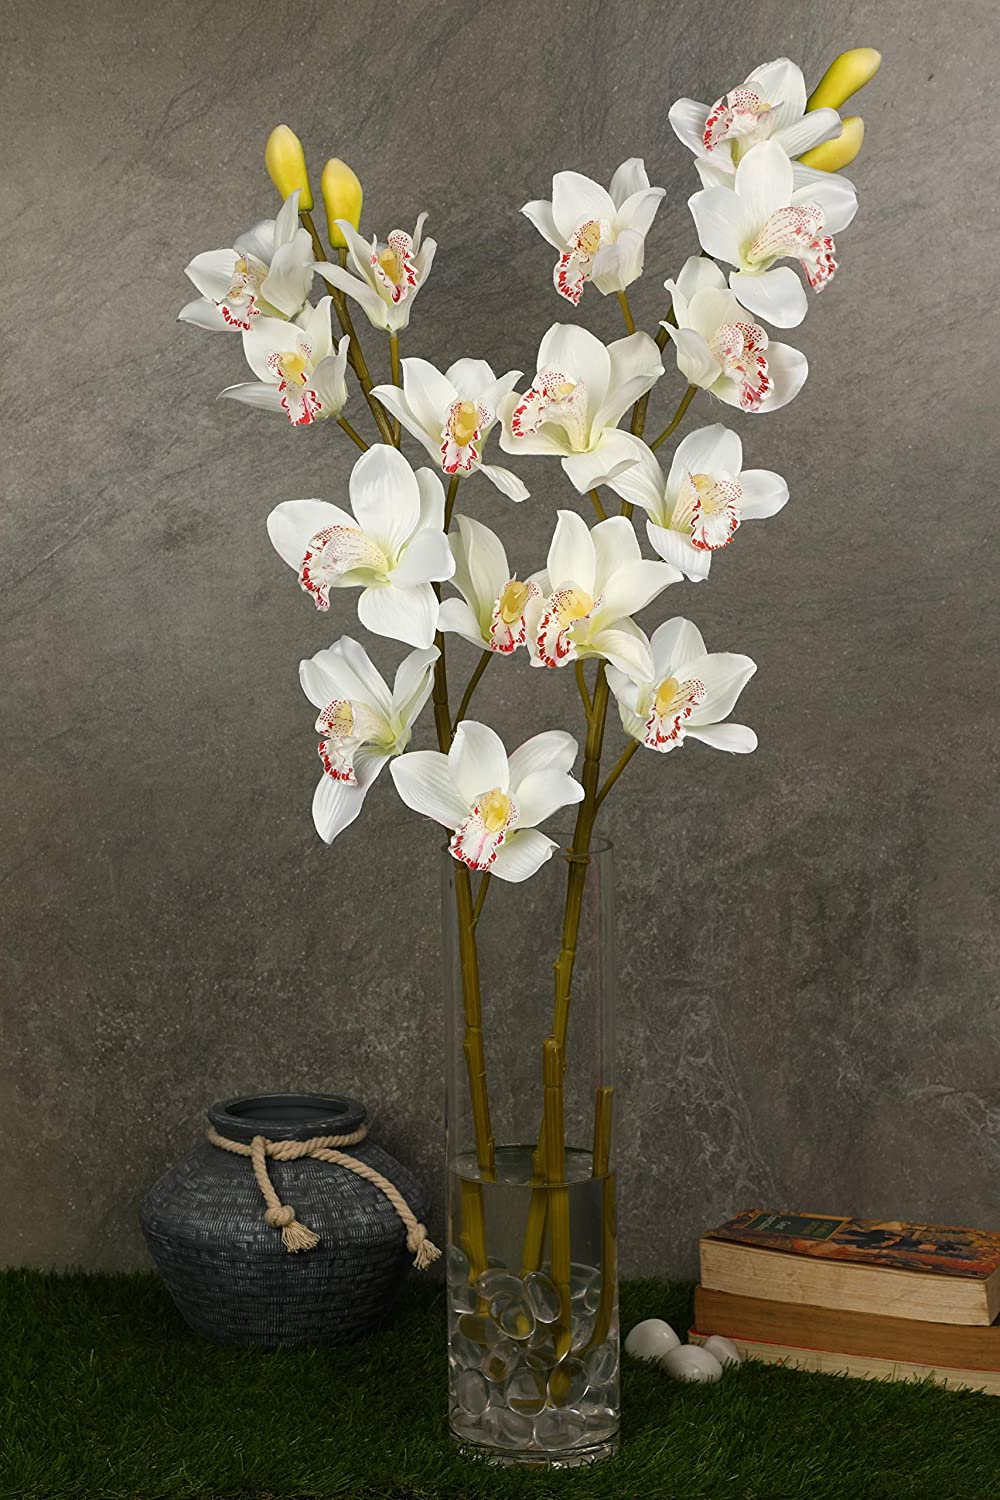 Pollination Radiant White Artificial Orchid Flowers for Indoor (Pack of 2, 38 INCH) - Artificial Flowers & Plants - PolliNation